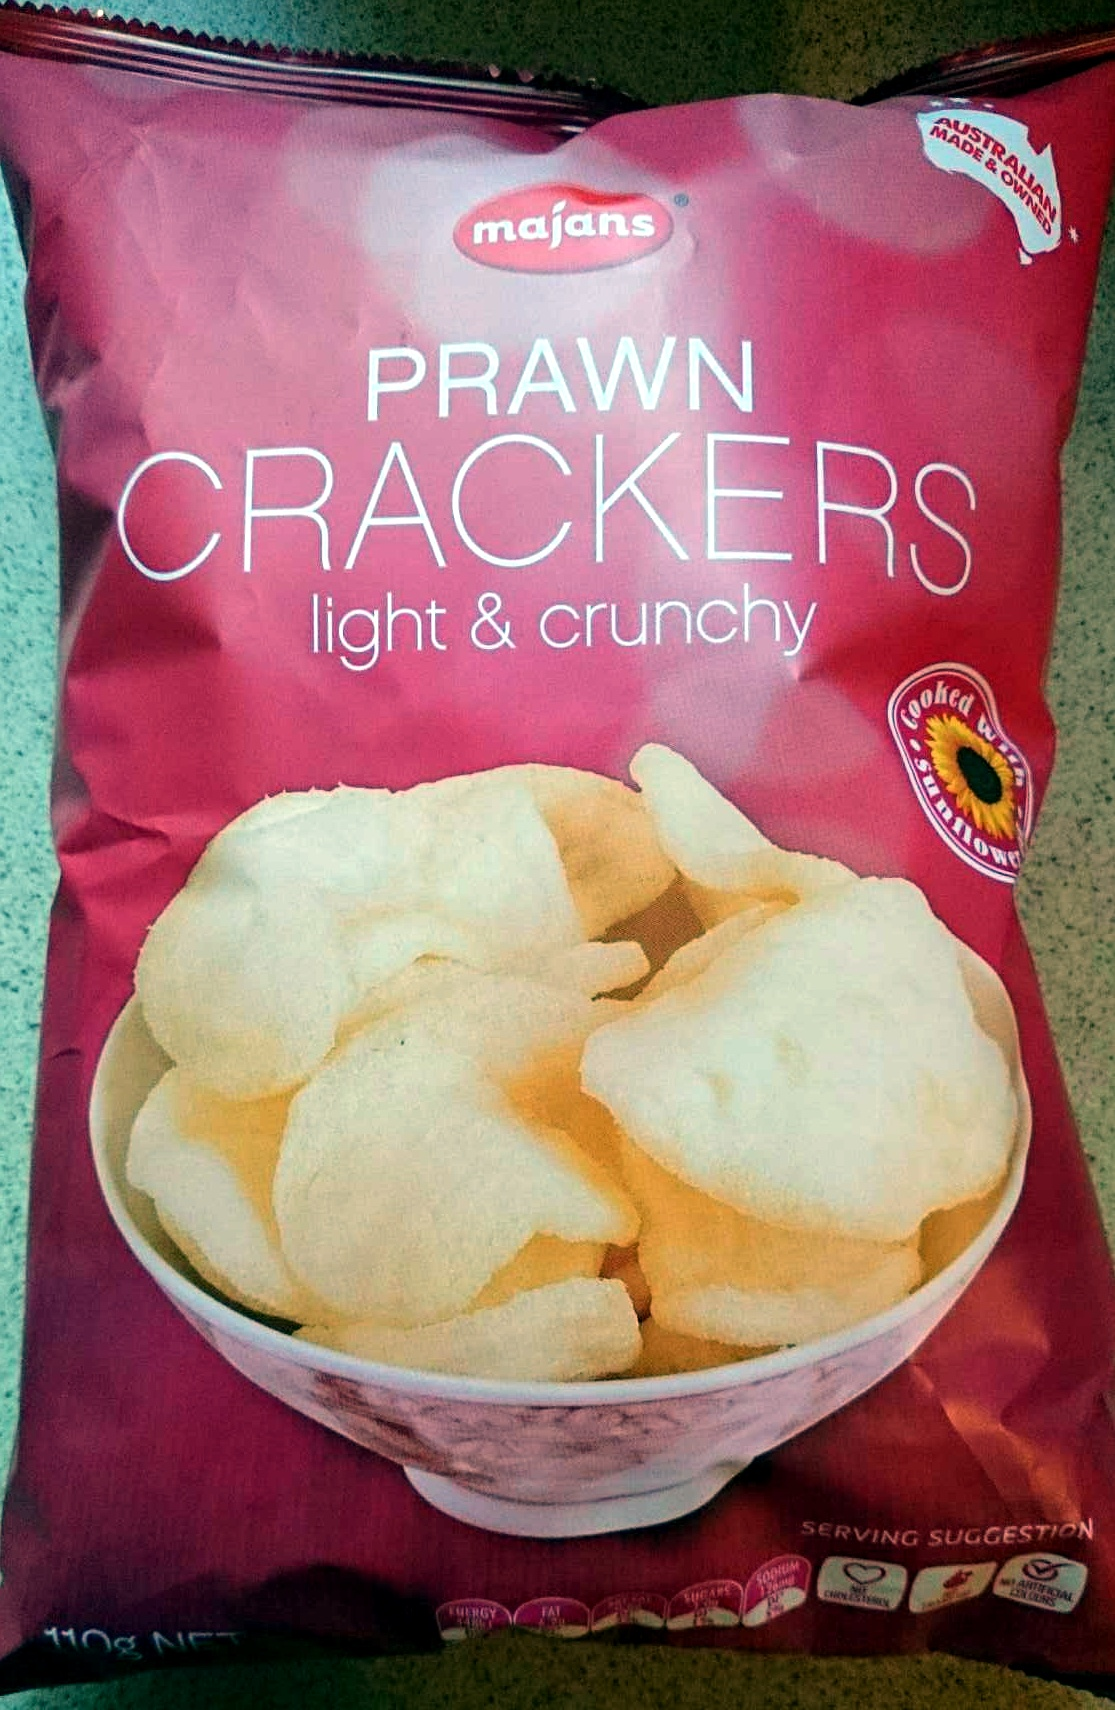 Prawn Crackers Light and Crunchy - Product - en